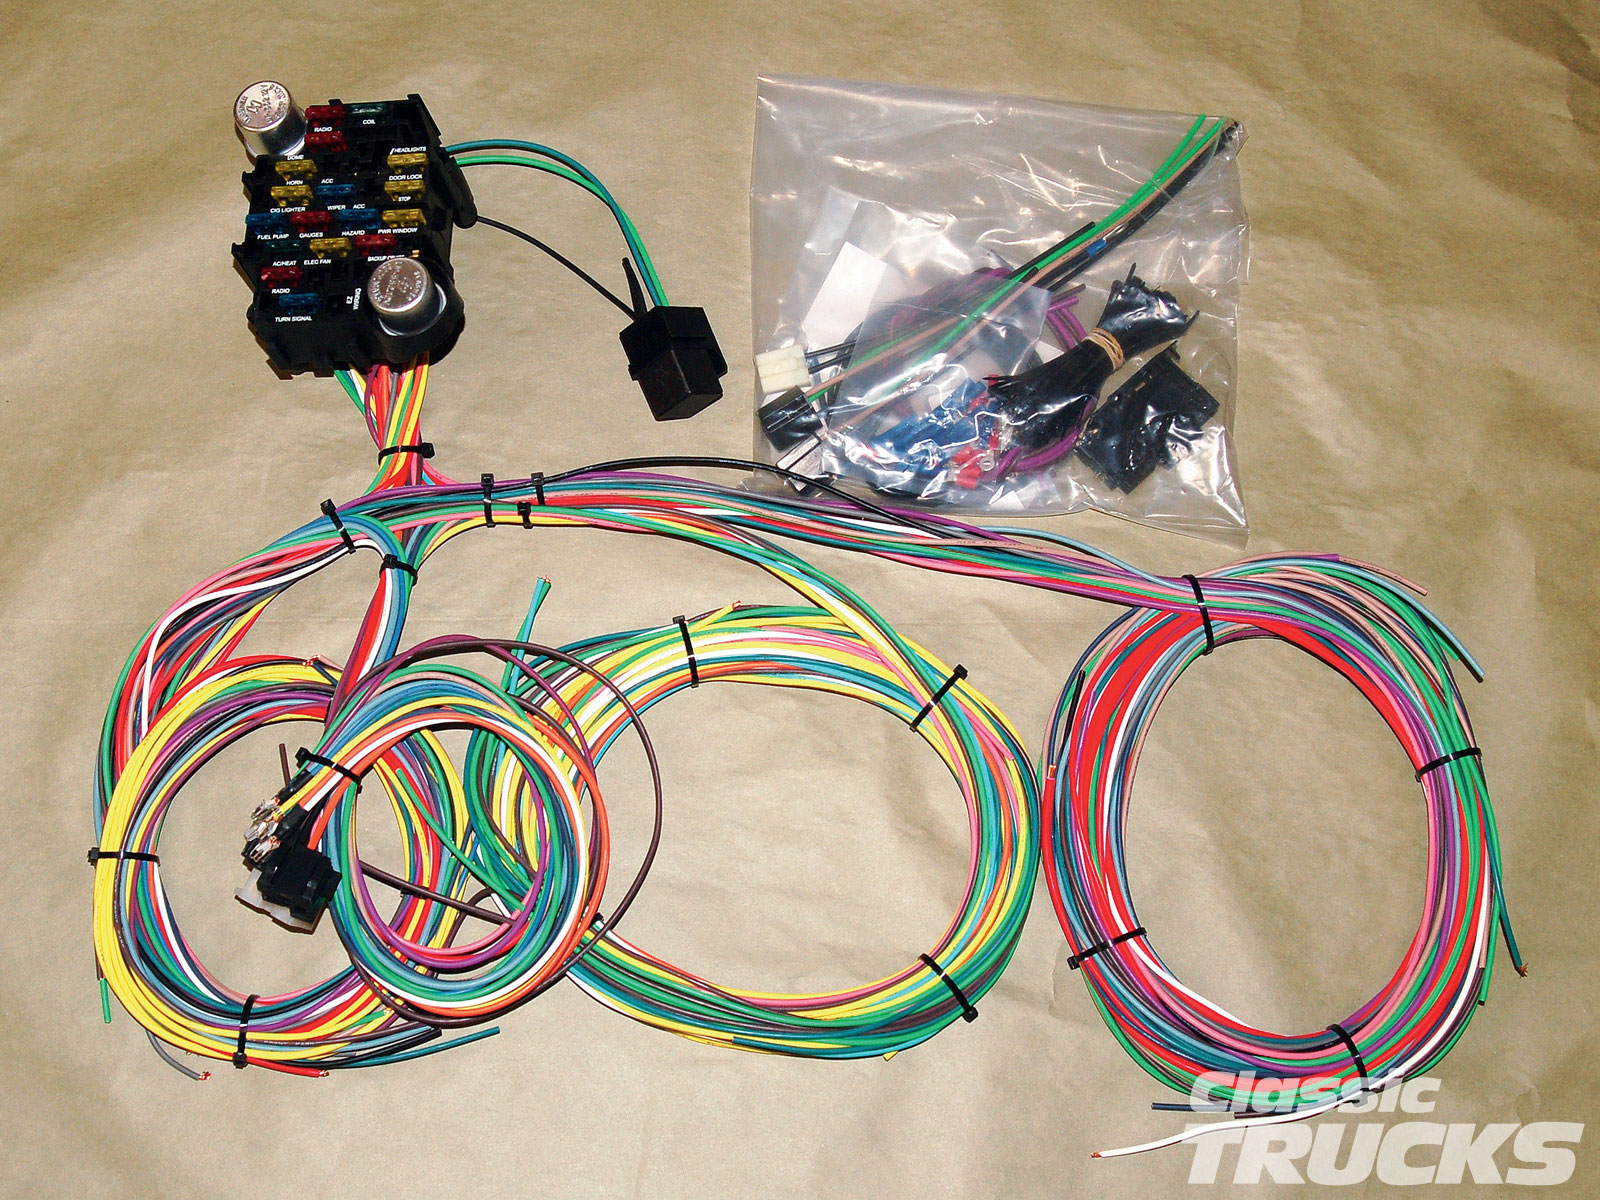 1010clt 02 o aftermarket wiring harness install kit?resize=640%2C480 how much does a wire harness cost to replace hobbiesxstyle how much does it cost to replace a wiring harness at readyjetset.co